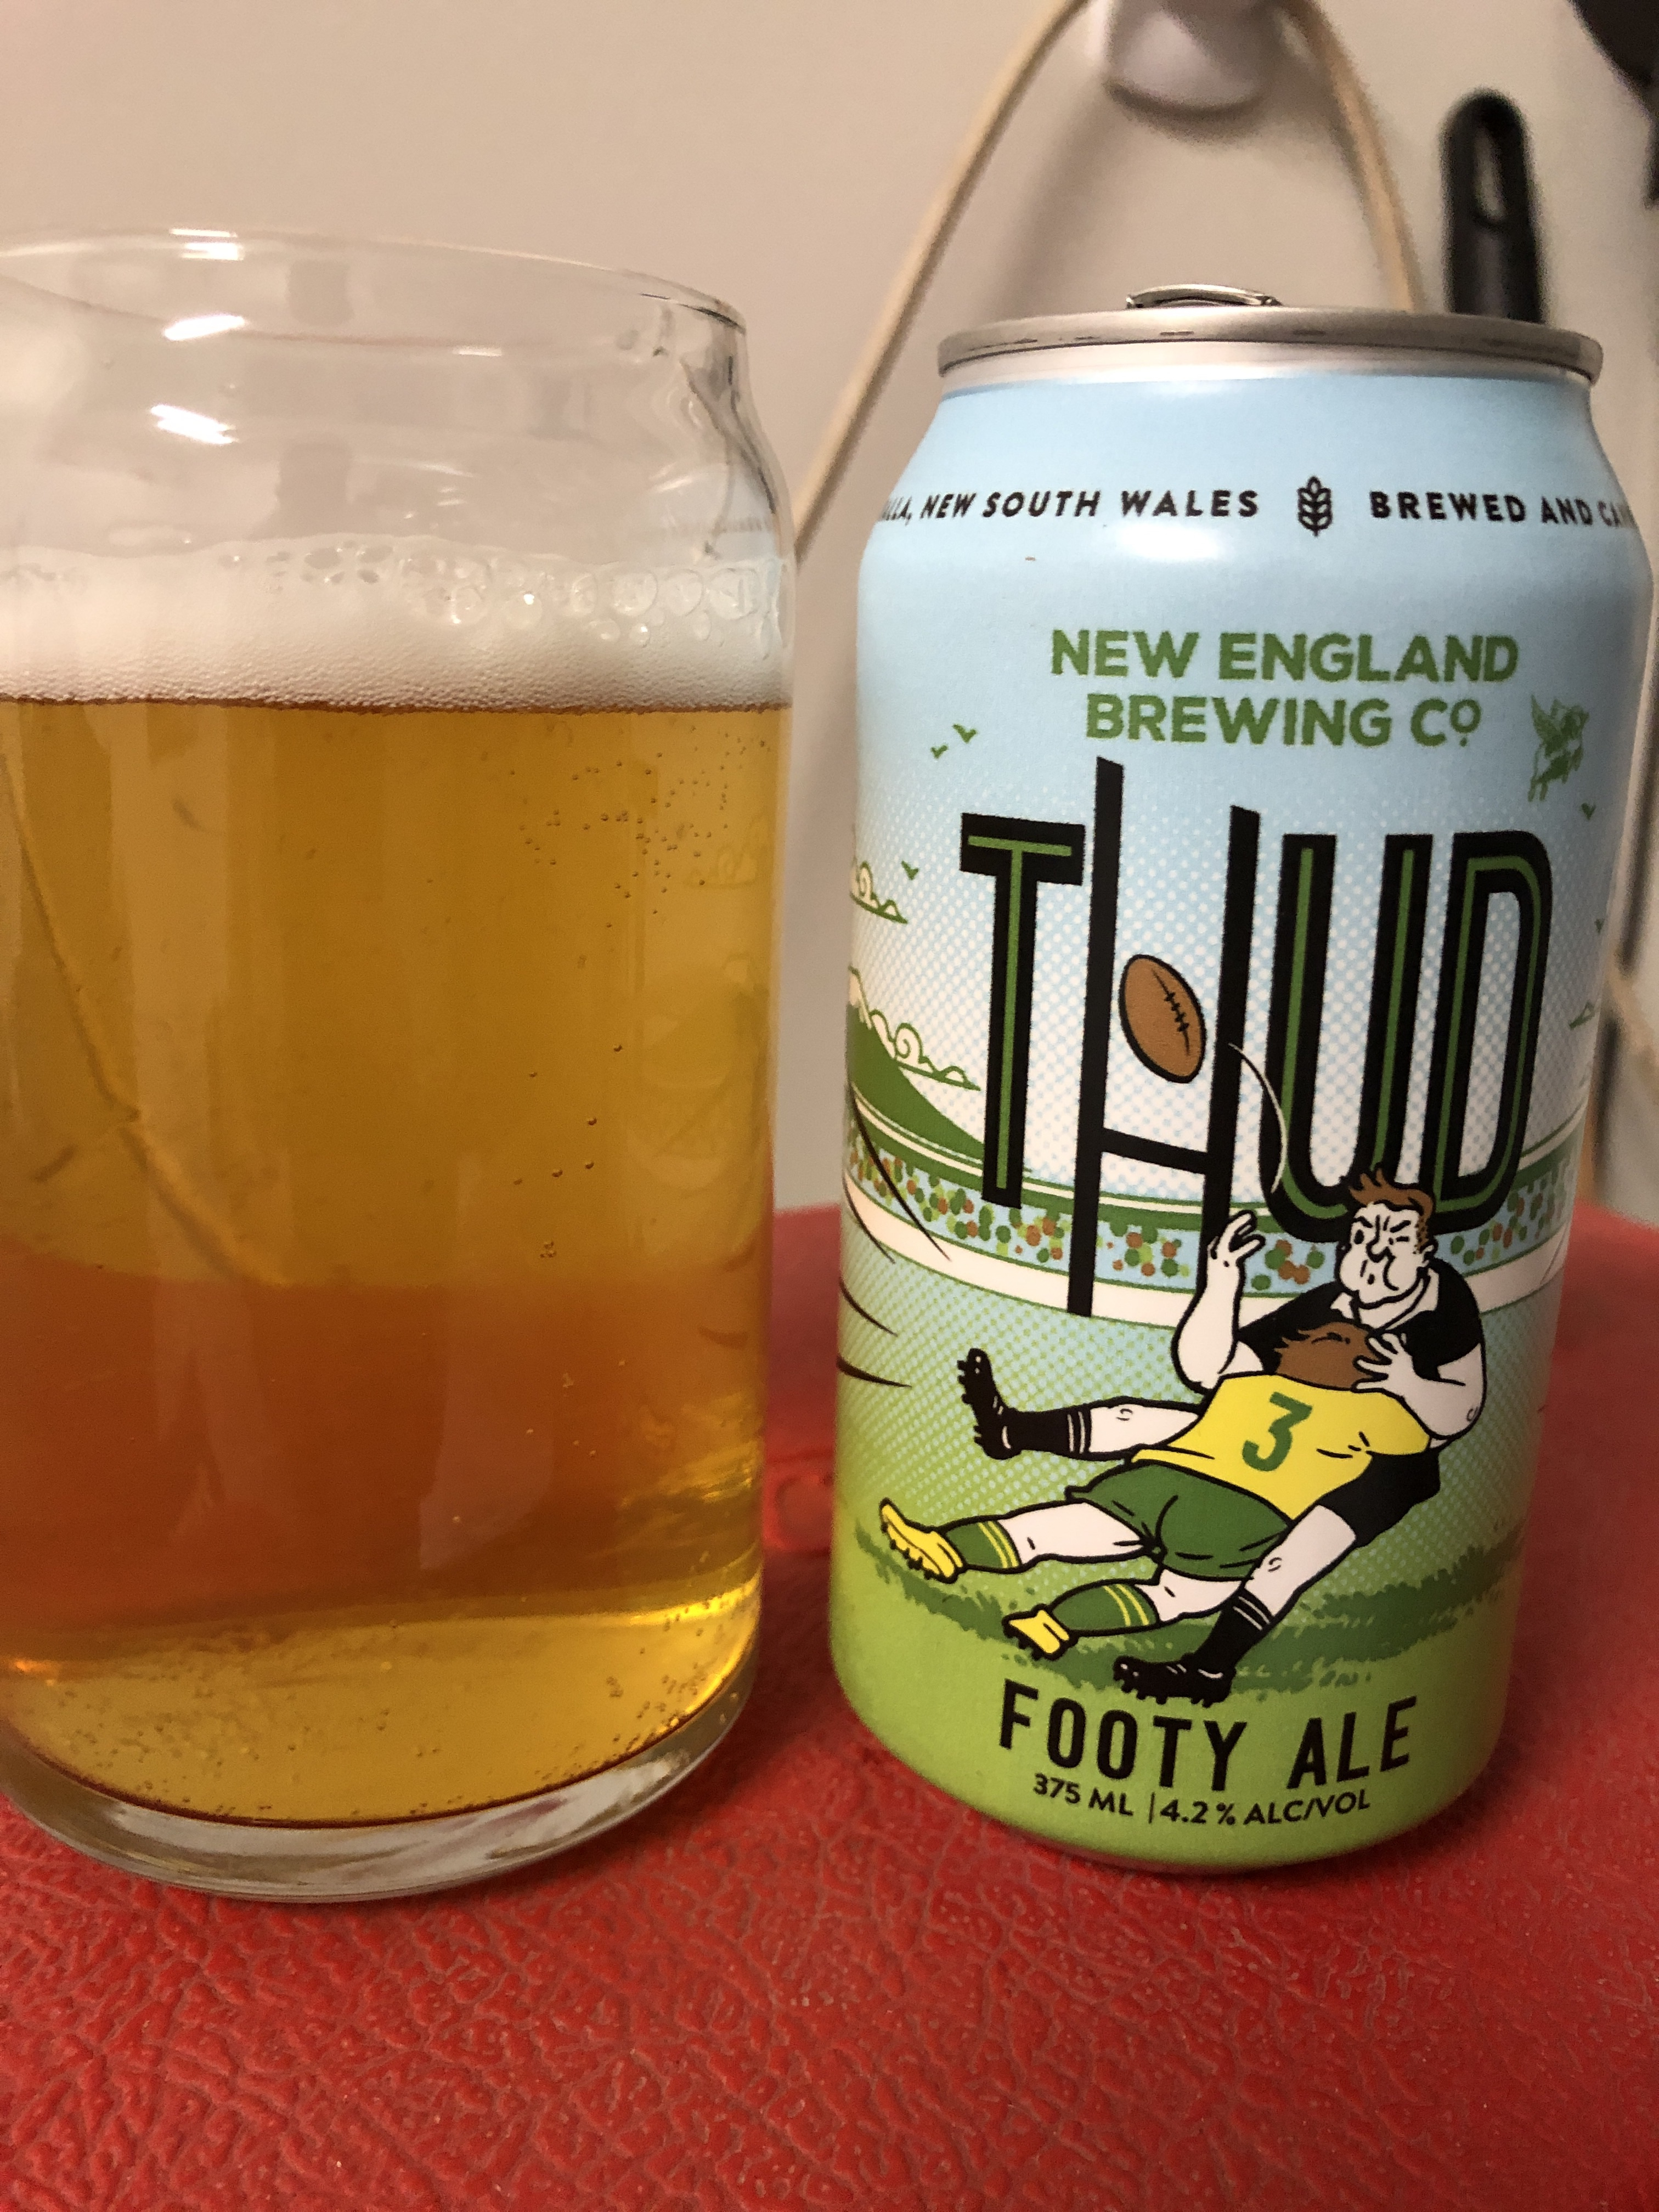 New England Brewing Co Thud Footy Ale